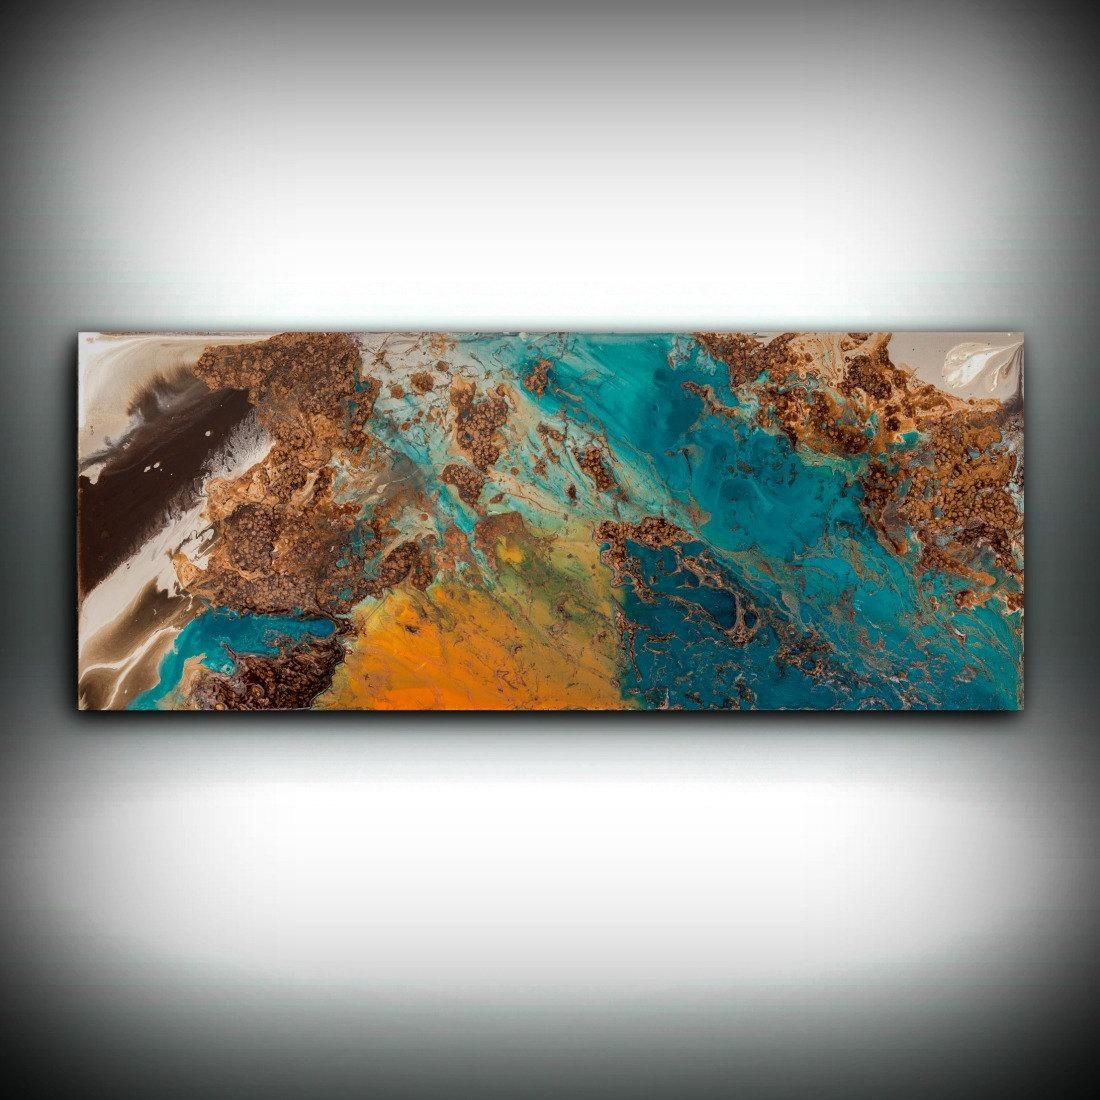 Sale Blue And Copper Art, Wall Art Prints Fine Art Prints Abstract Regarding Orange And Blue Wall Art (View 4 of 20)